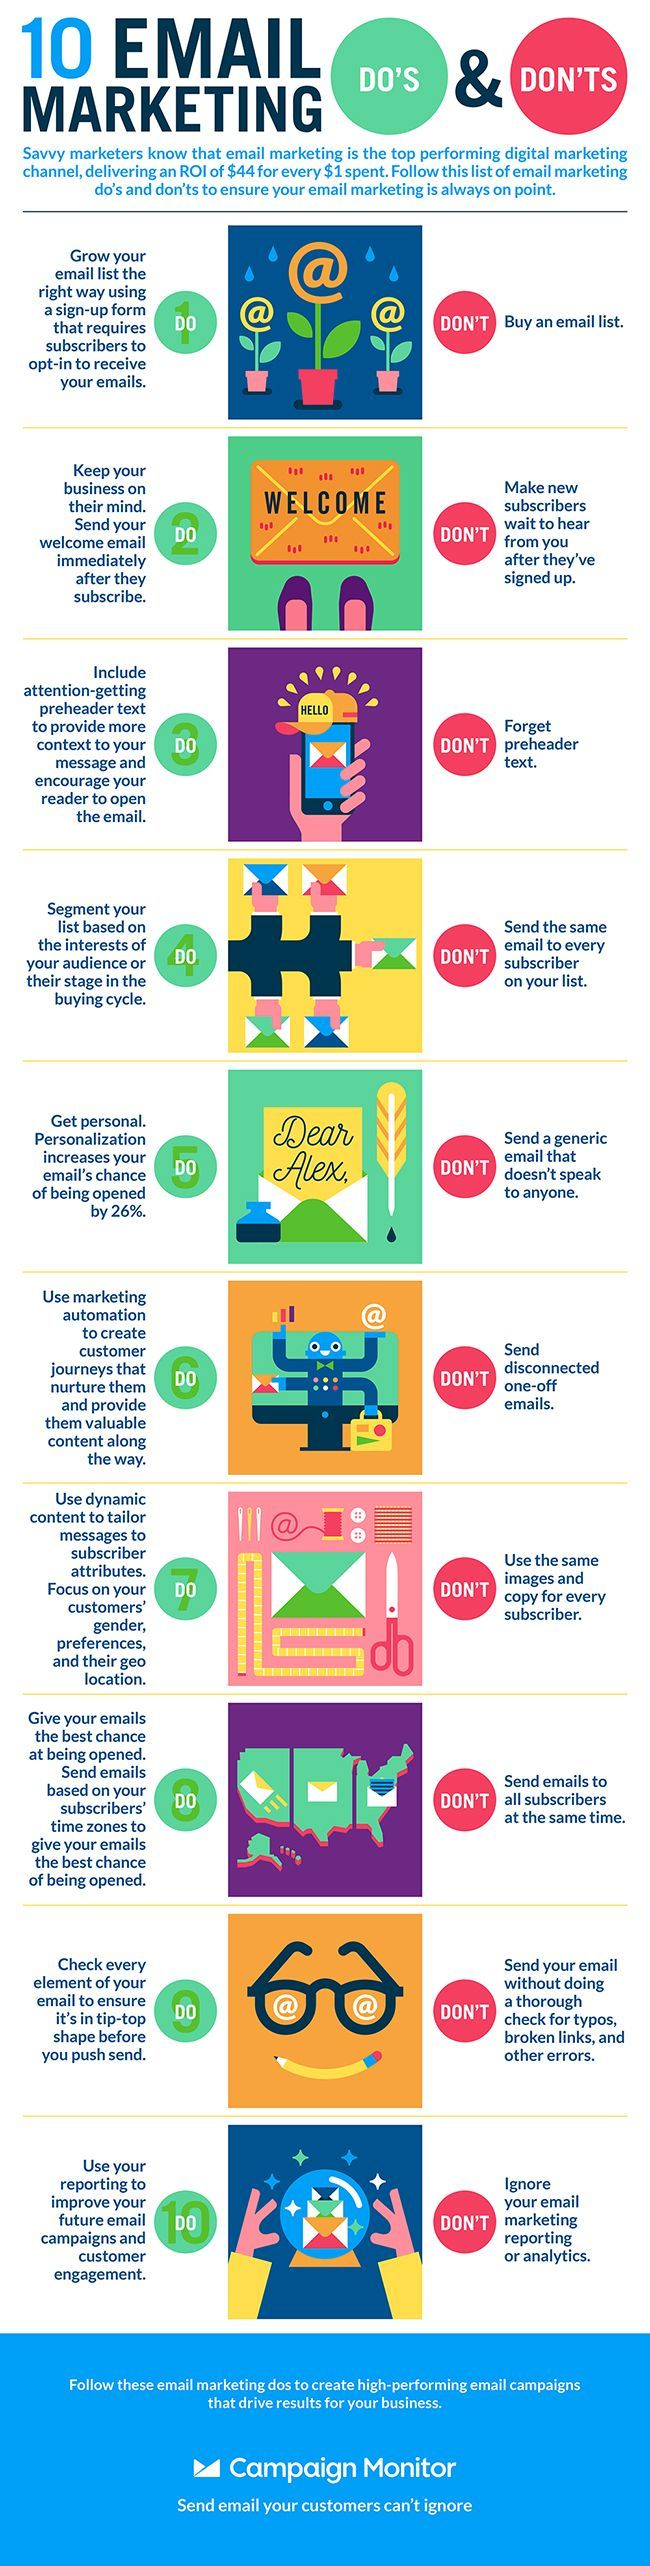 We sign up for all the newsletters. Some of them are wonderful, like Campaign Monitor, and some of them… not-so-much (names redacted). Recently, we came across this helpful infographic, and we just had to share. 100% on-point. Email marketing is a proven tactic that marketers count on to drive results again and again. We've put …